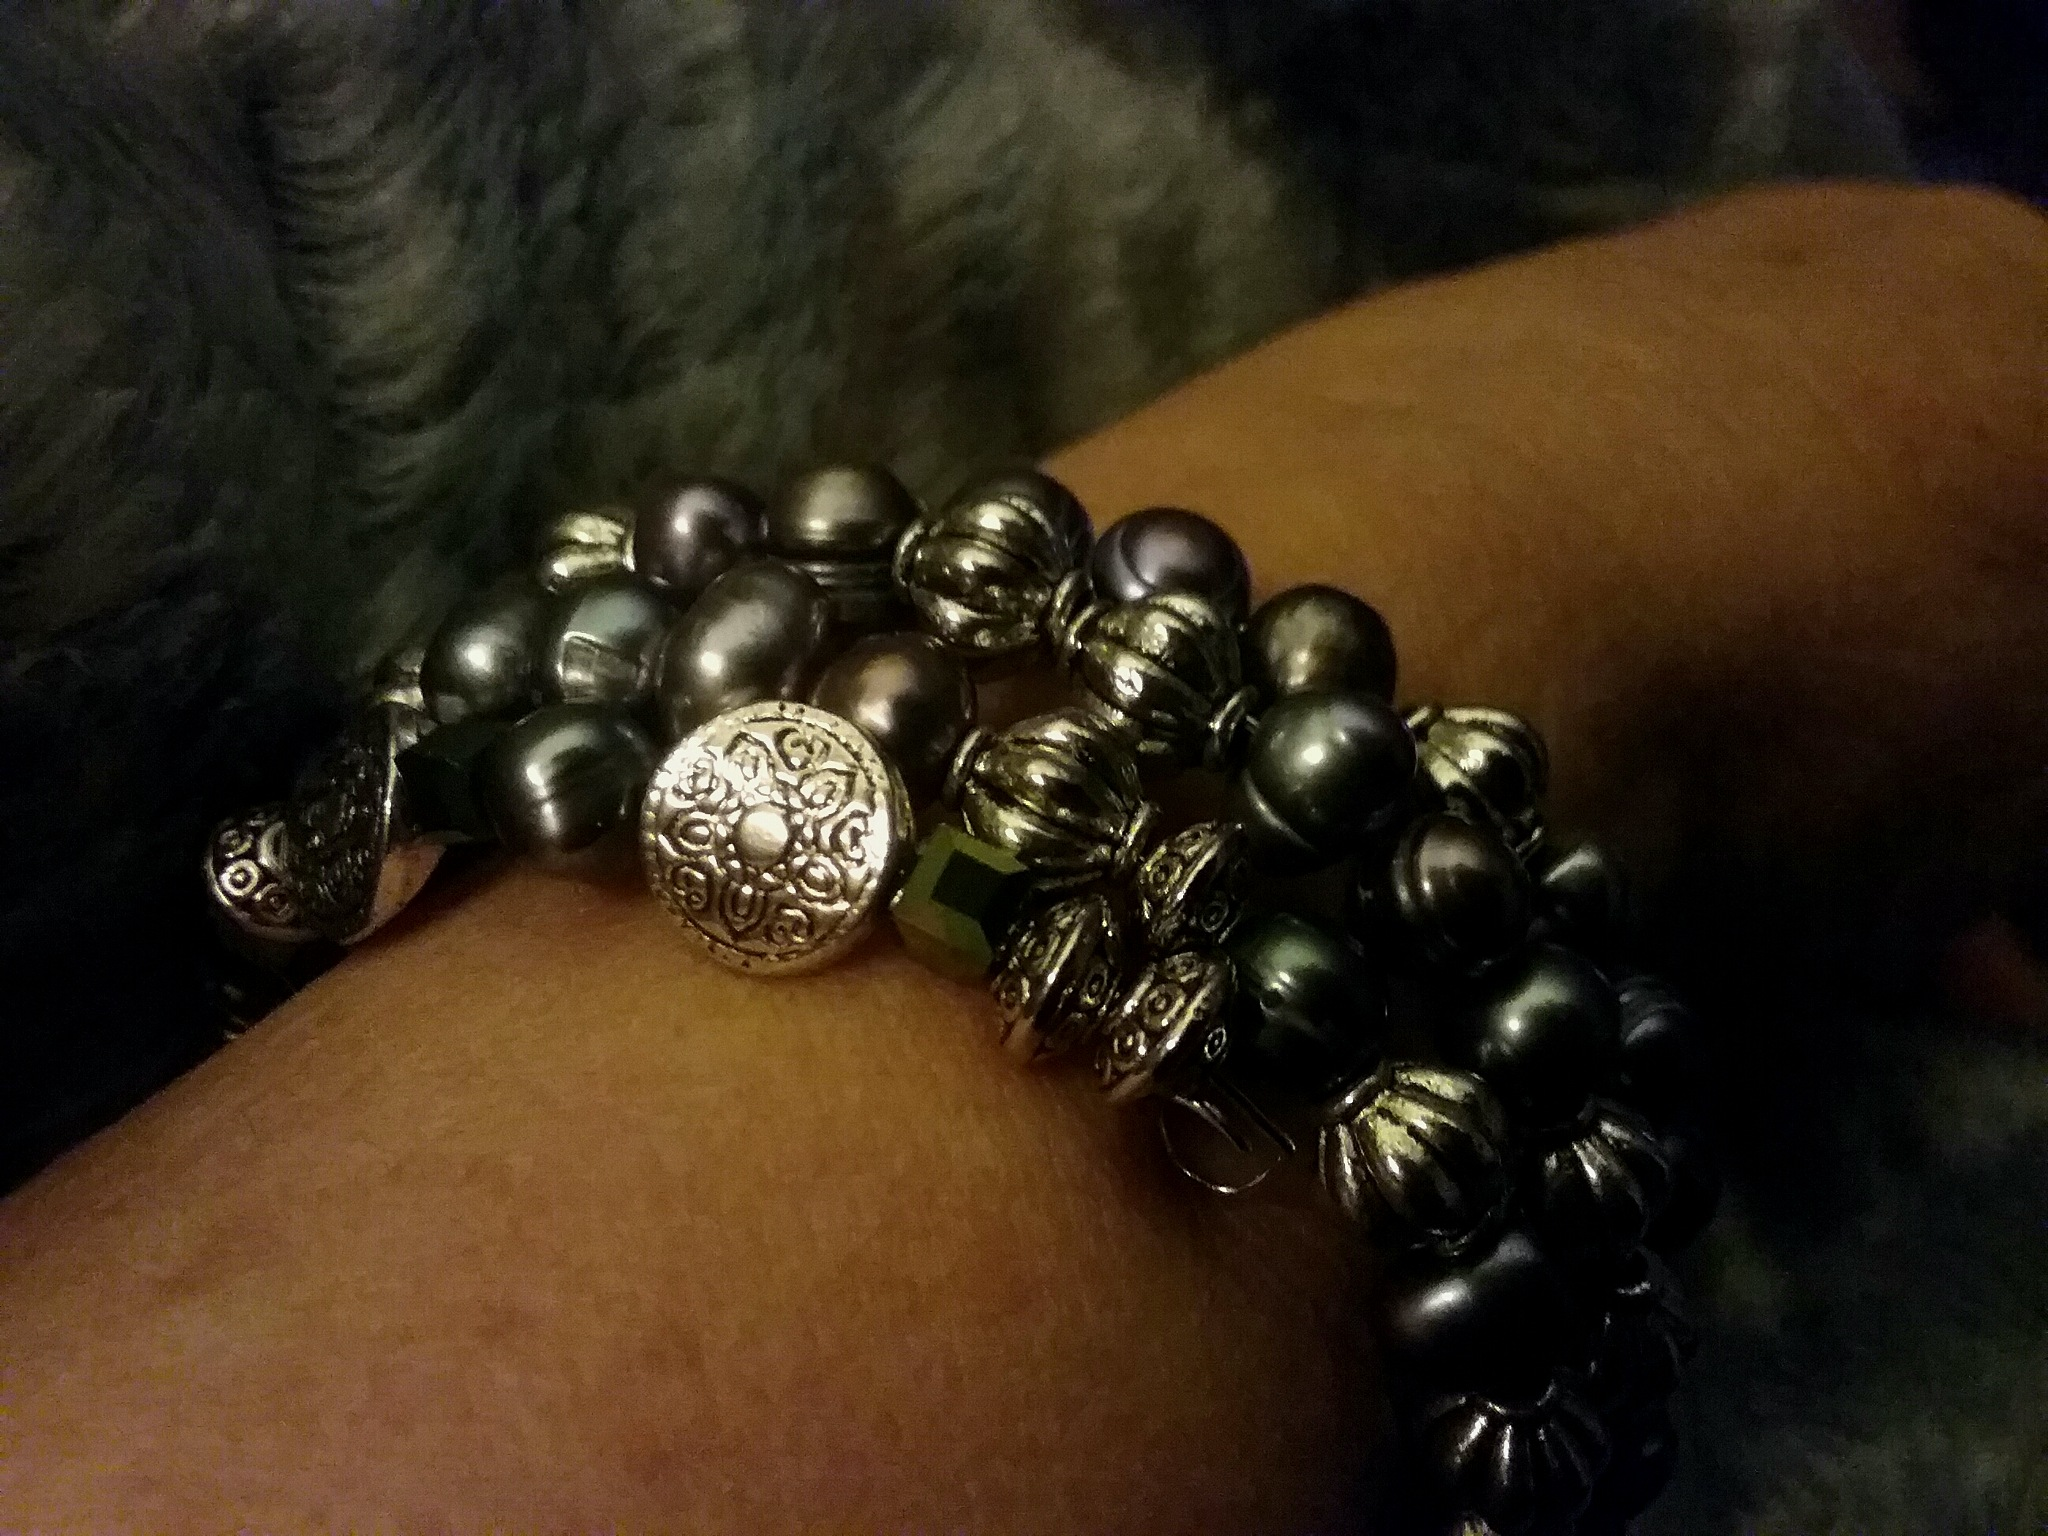 It is raining, so I made  this bracelet.  by TatyanaNagel